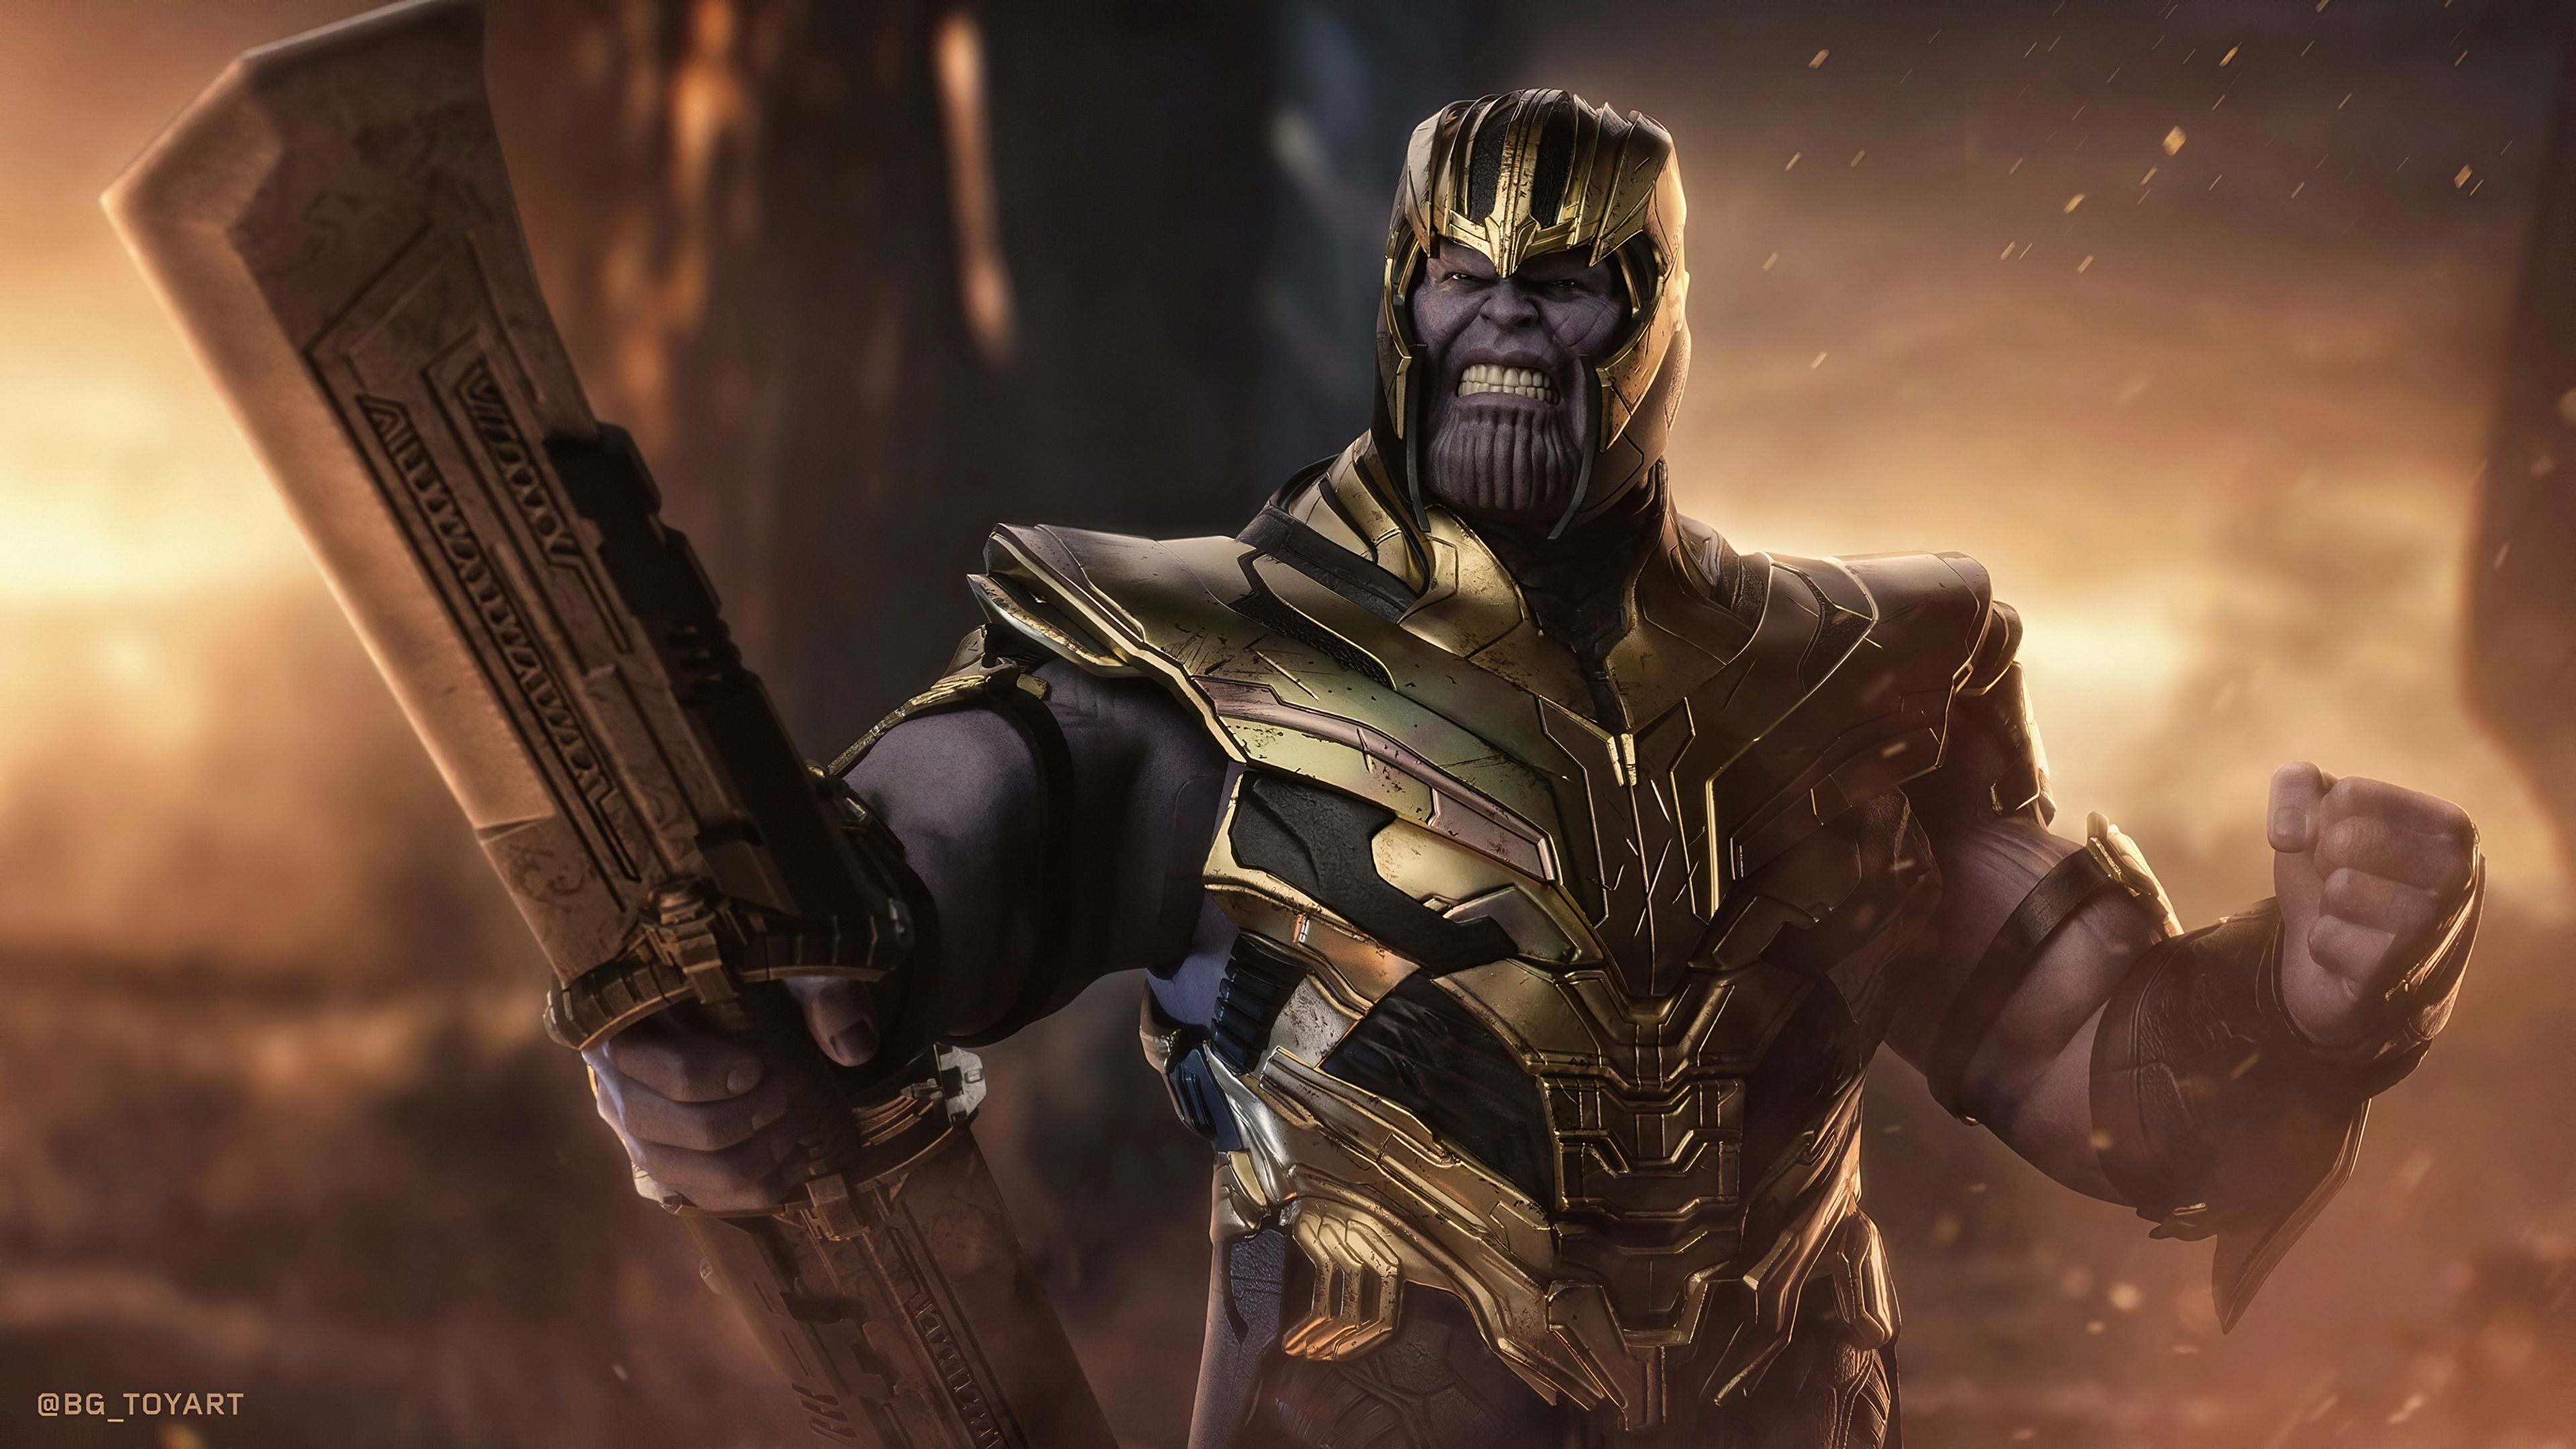 Thanos 2020 Artwork Thanos Wallpapers Thanos Phone Wallpapers 4k Thanos Art Wallpapers Thanos 4k Wallpapers In 2020 Art Wallpaper Phone Wallpaper Artwork